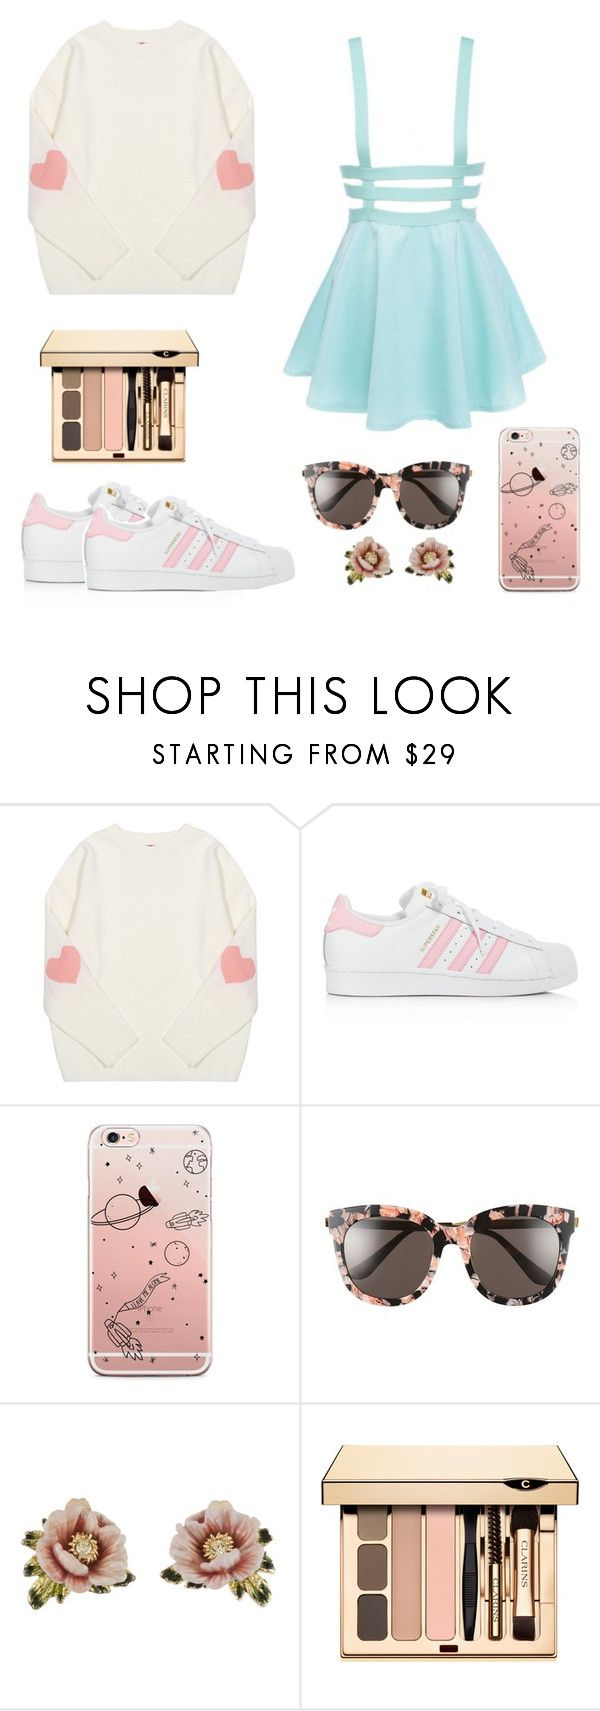 """""""♥"""" by uucuvg ❤ liked on Polyvore featuring beauty, adidas, Gentle Monster and Les Néréides"""